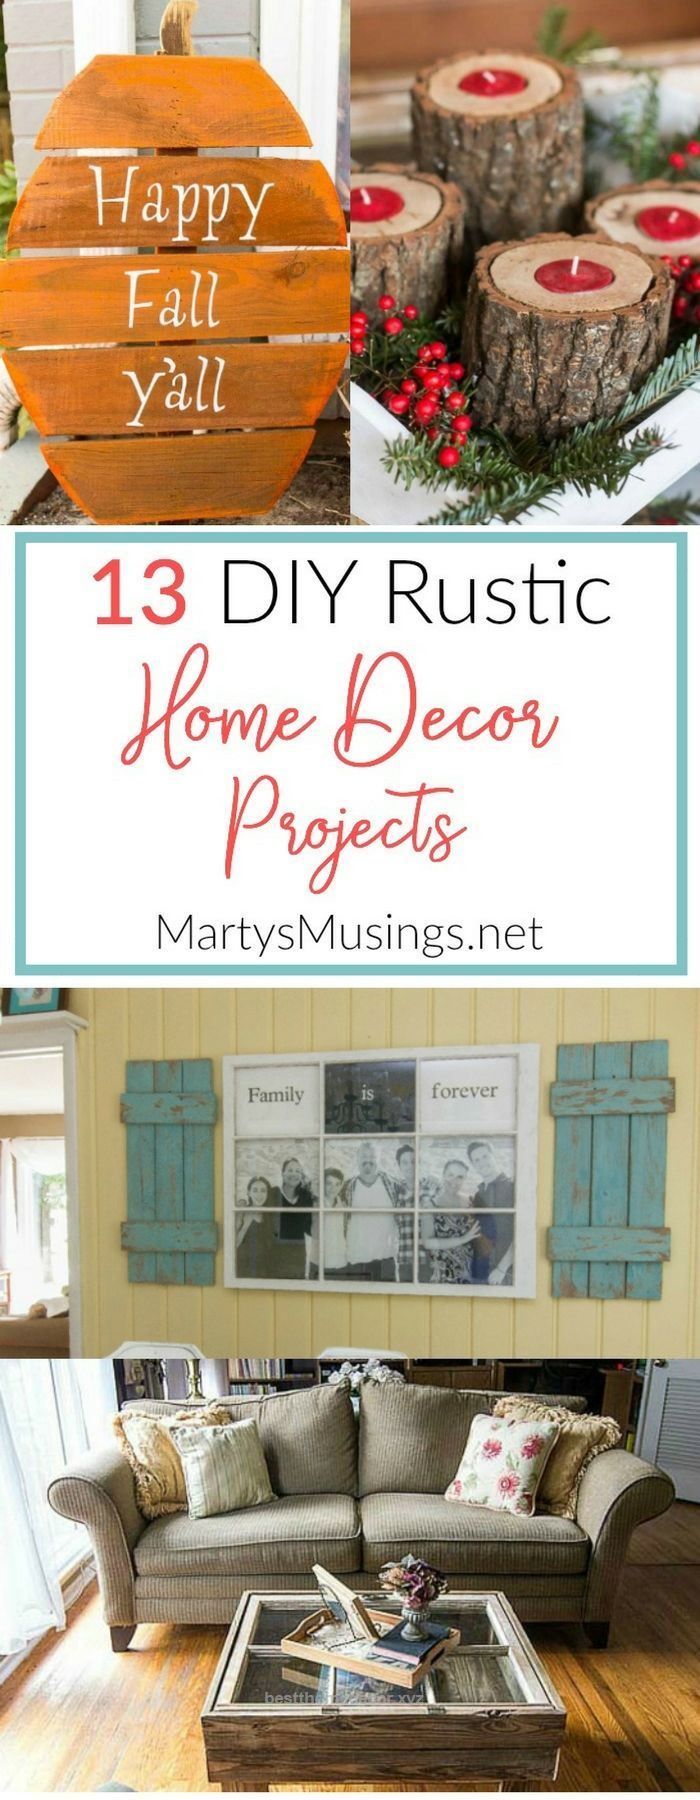 Check out this Trying to find your own style? These 13 DIY rustic home decor projects will give you tons of inspiration, creative AND unique ideas on a budget!  The post  Trying to find your own style ..